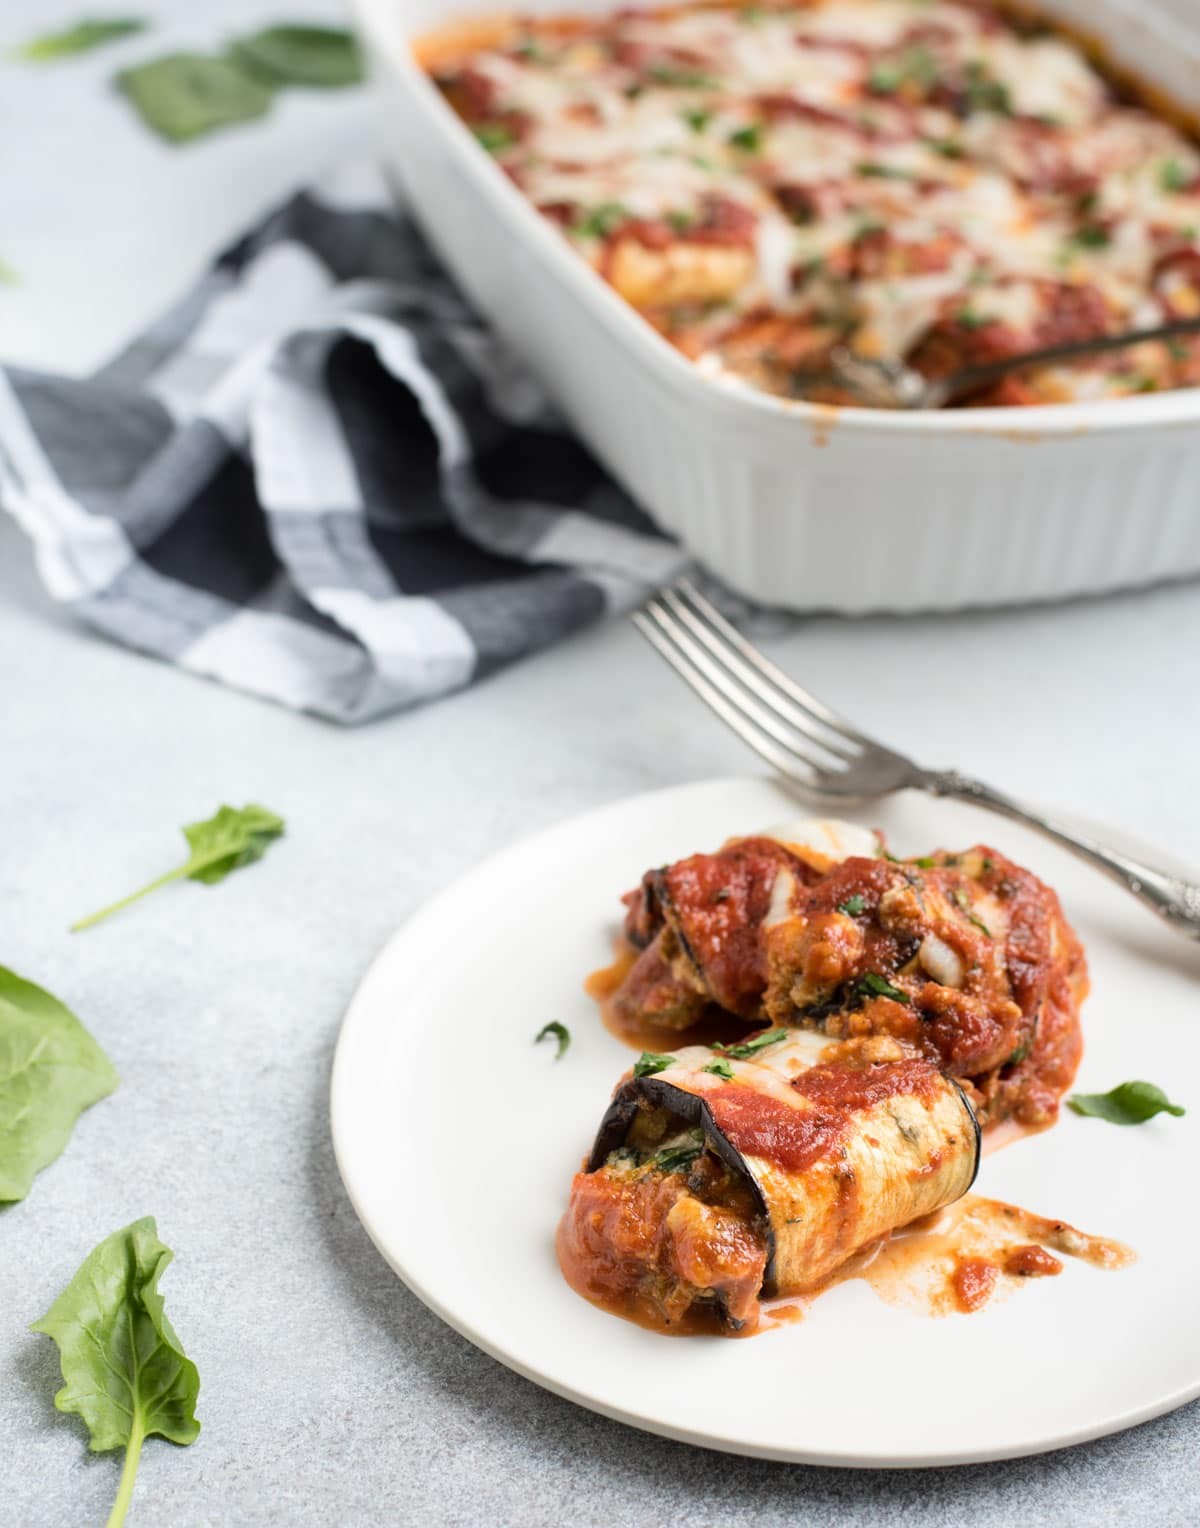 eggplant lasagna roll ups dinner dish and plate